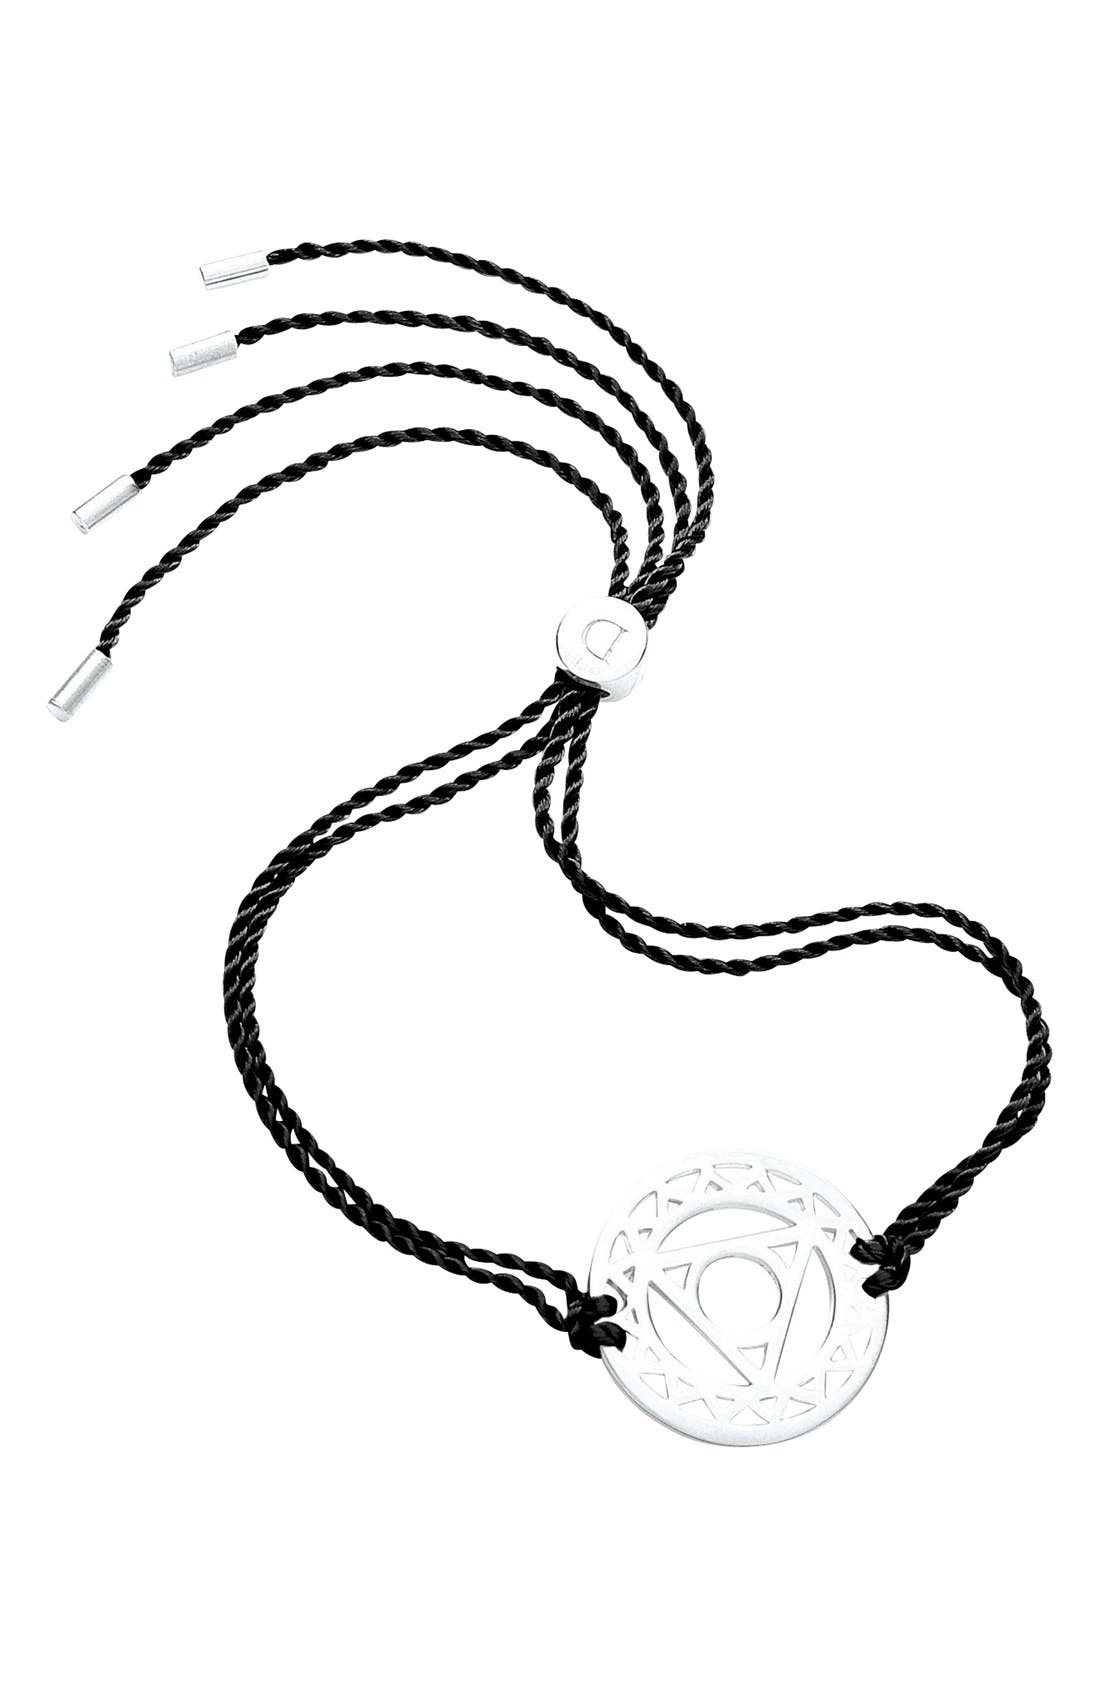 'Throat Chakra' Cord Bracelet,                             Main thumbnail 1, color,                             925 Sterling Silver/Black